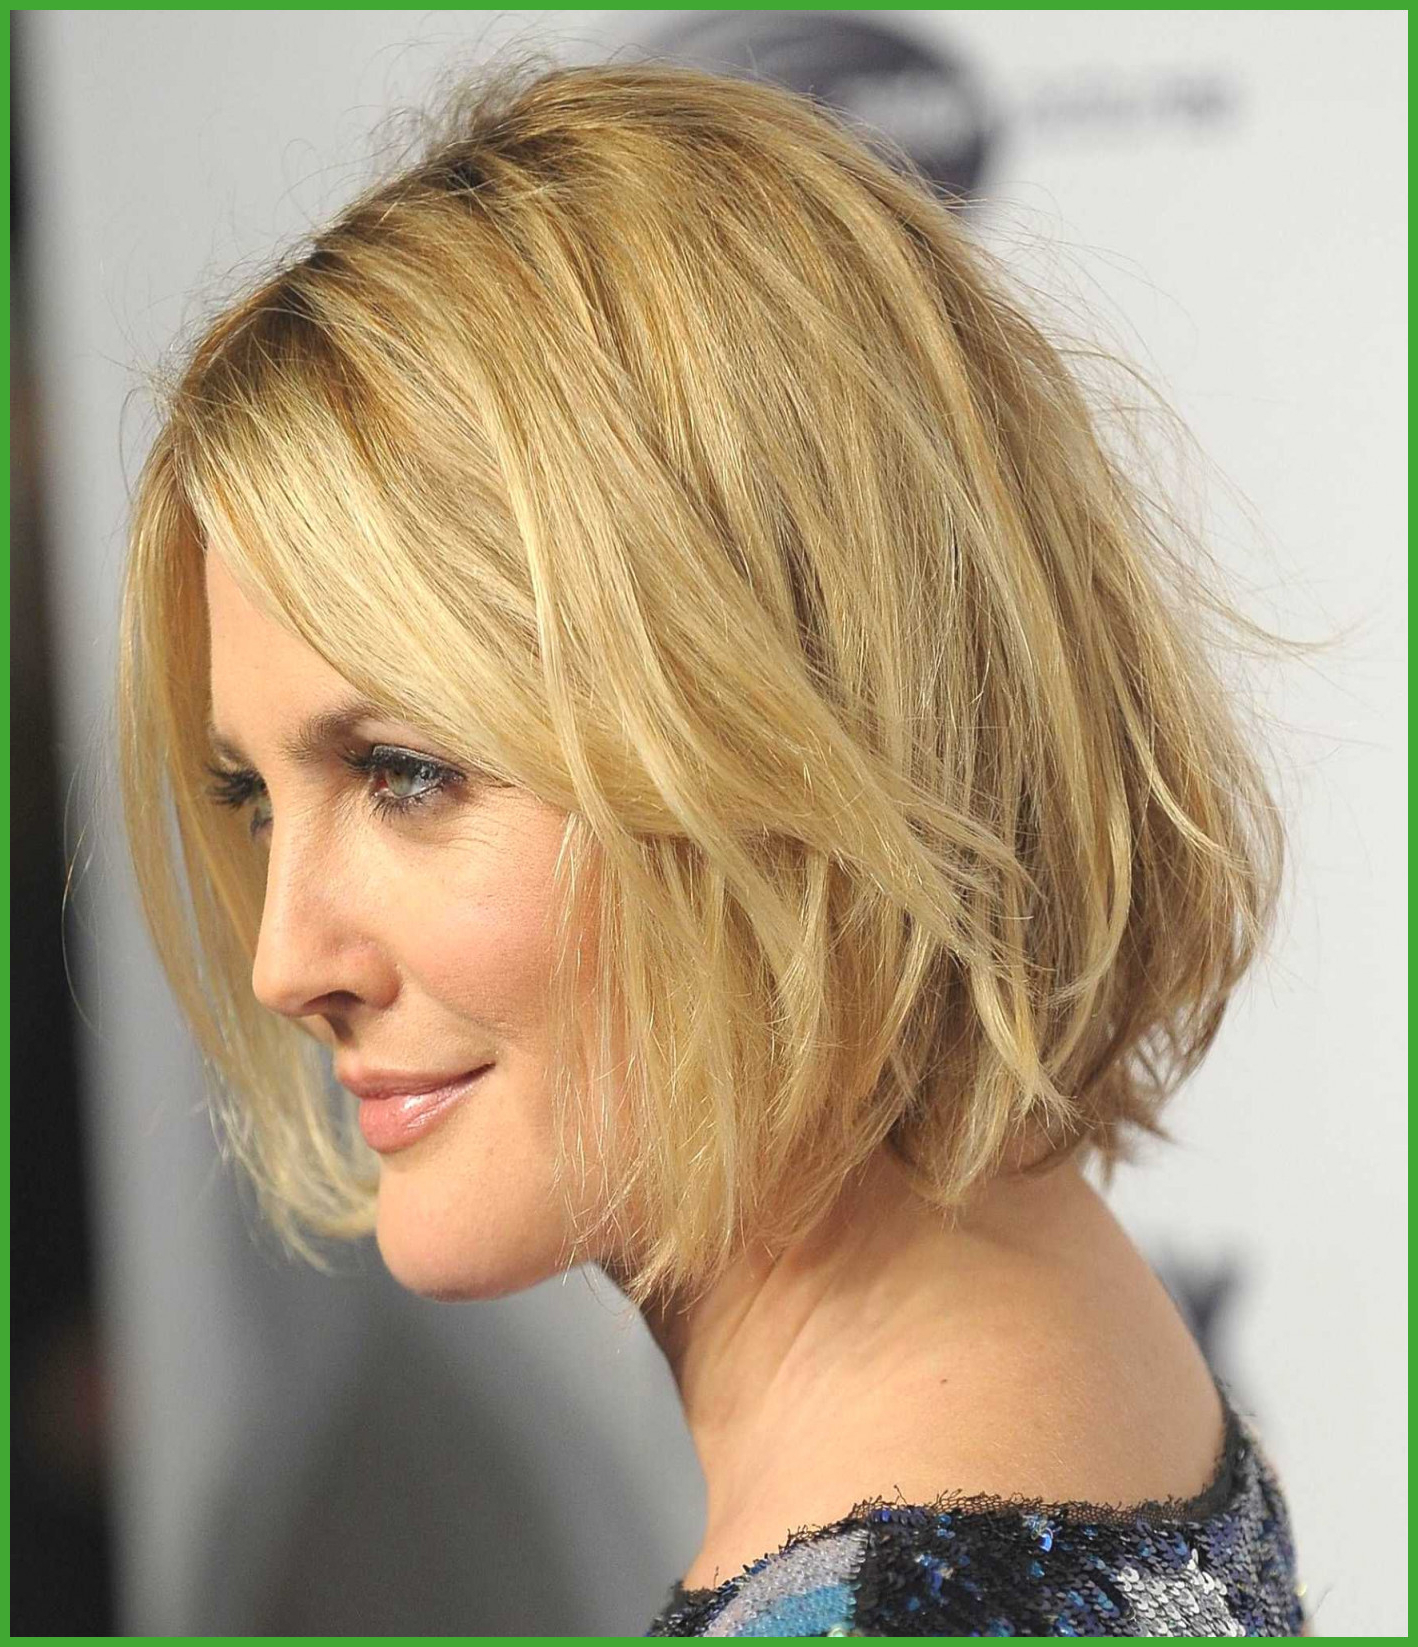 Drew Barrymore Short Hairstyles Awesome 20 Awesome Layered Haircut Pertaining To Drew Barrymore Short Haircuts (Gallery 8 of 25)